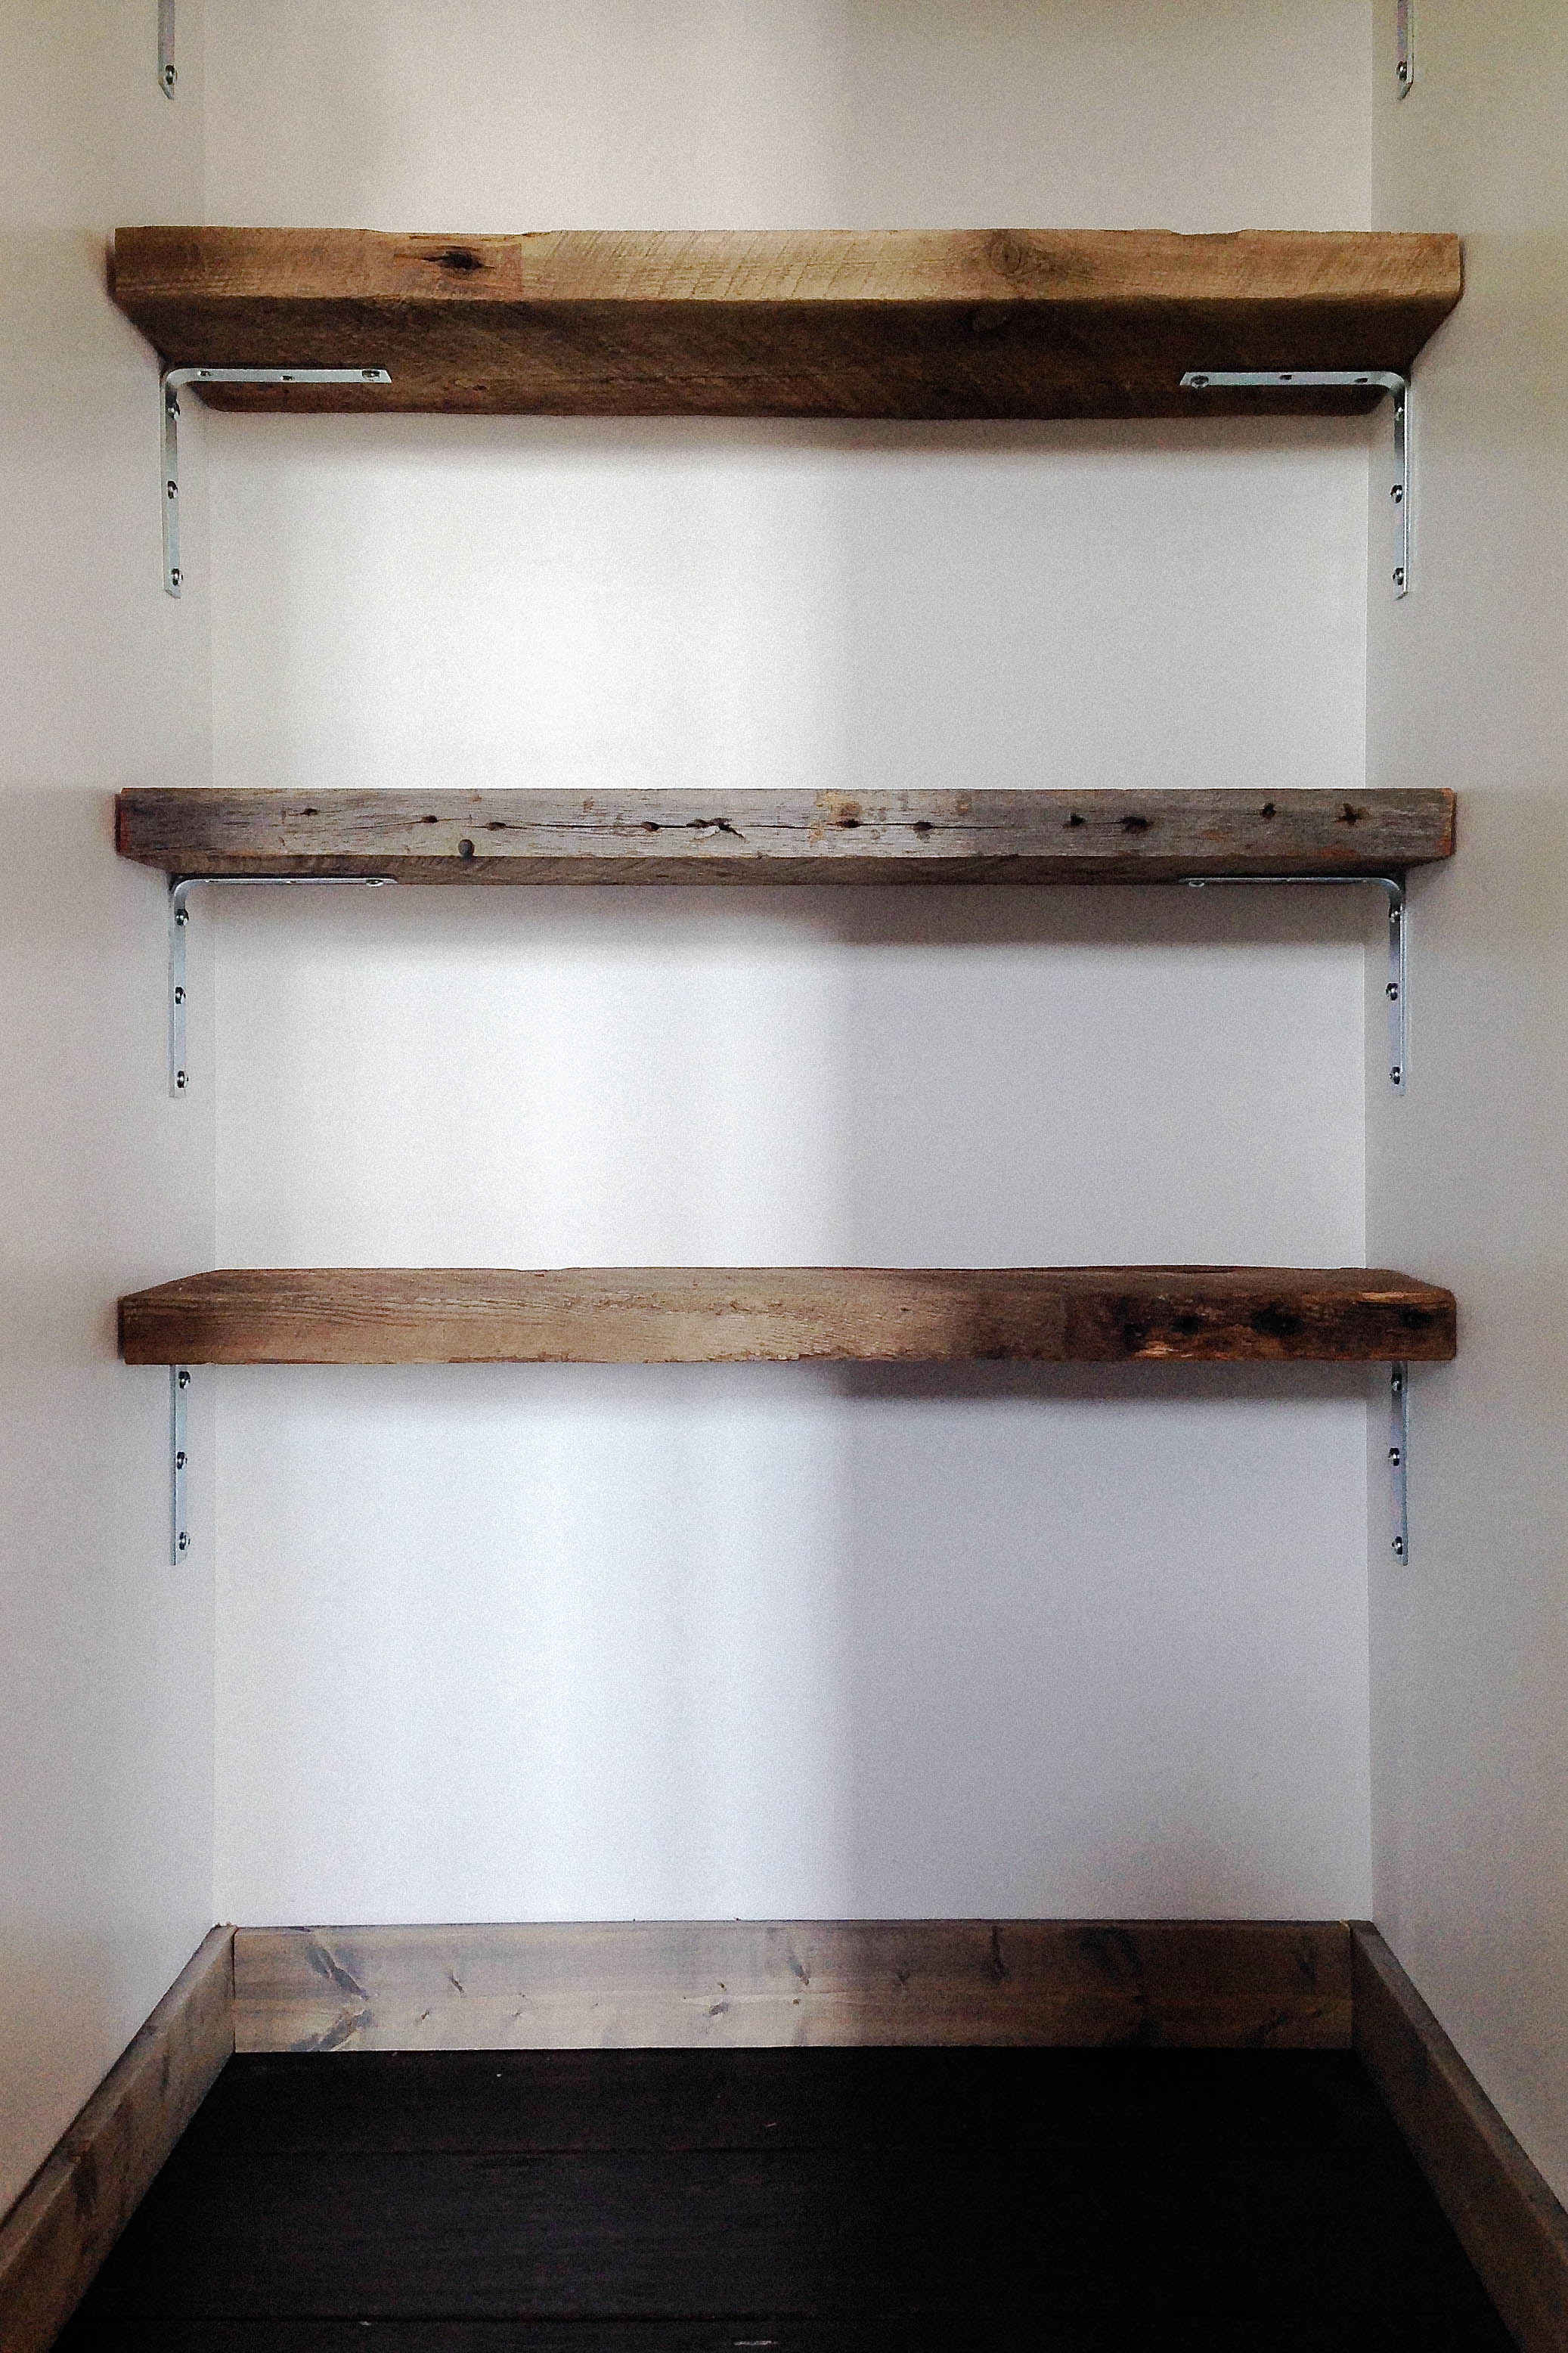 Here's what you need to make your own reclaimed wood shelving: